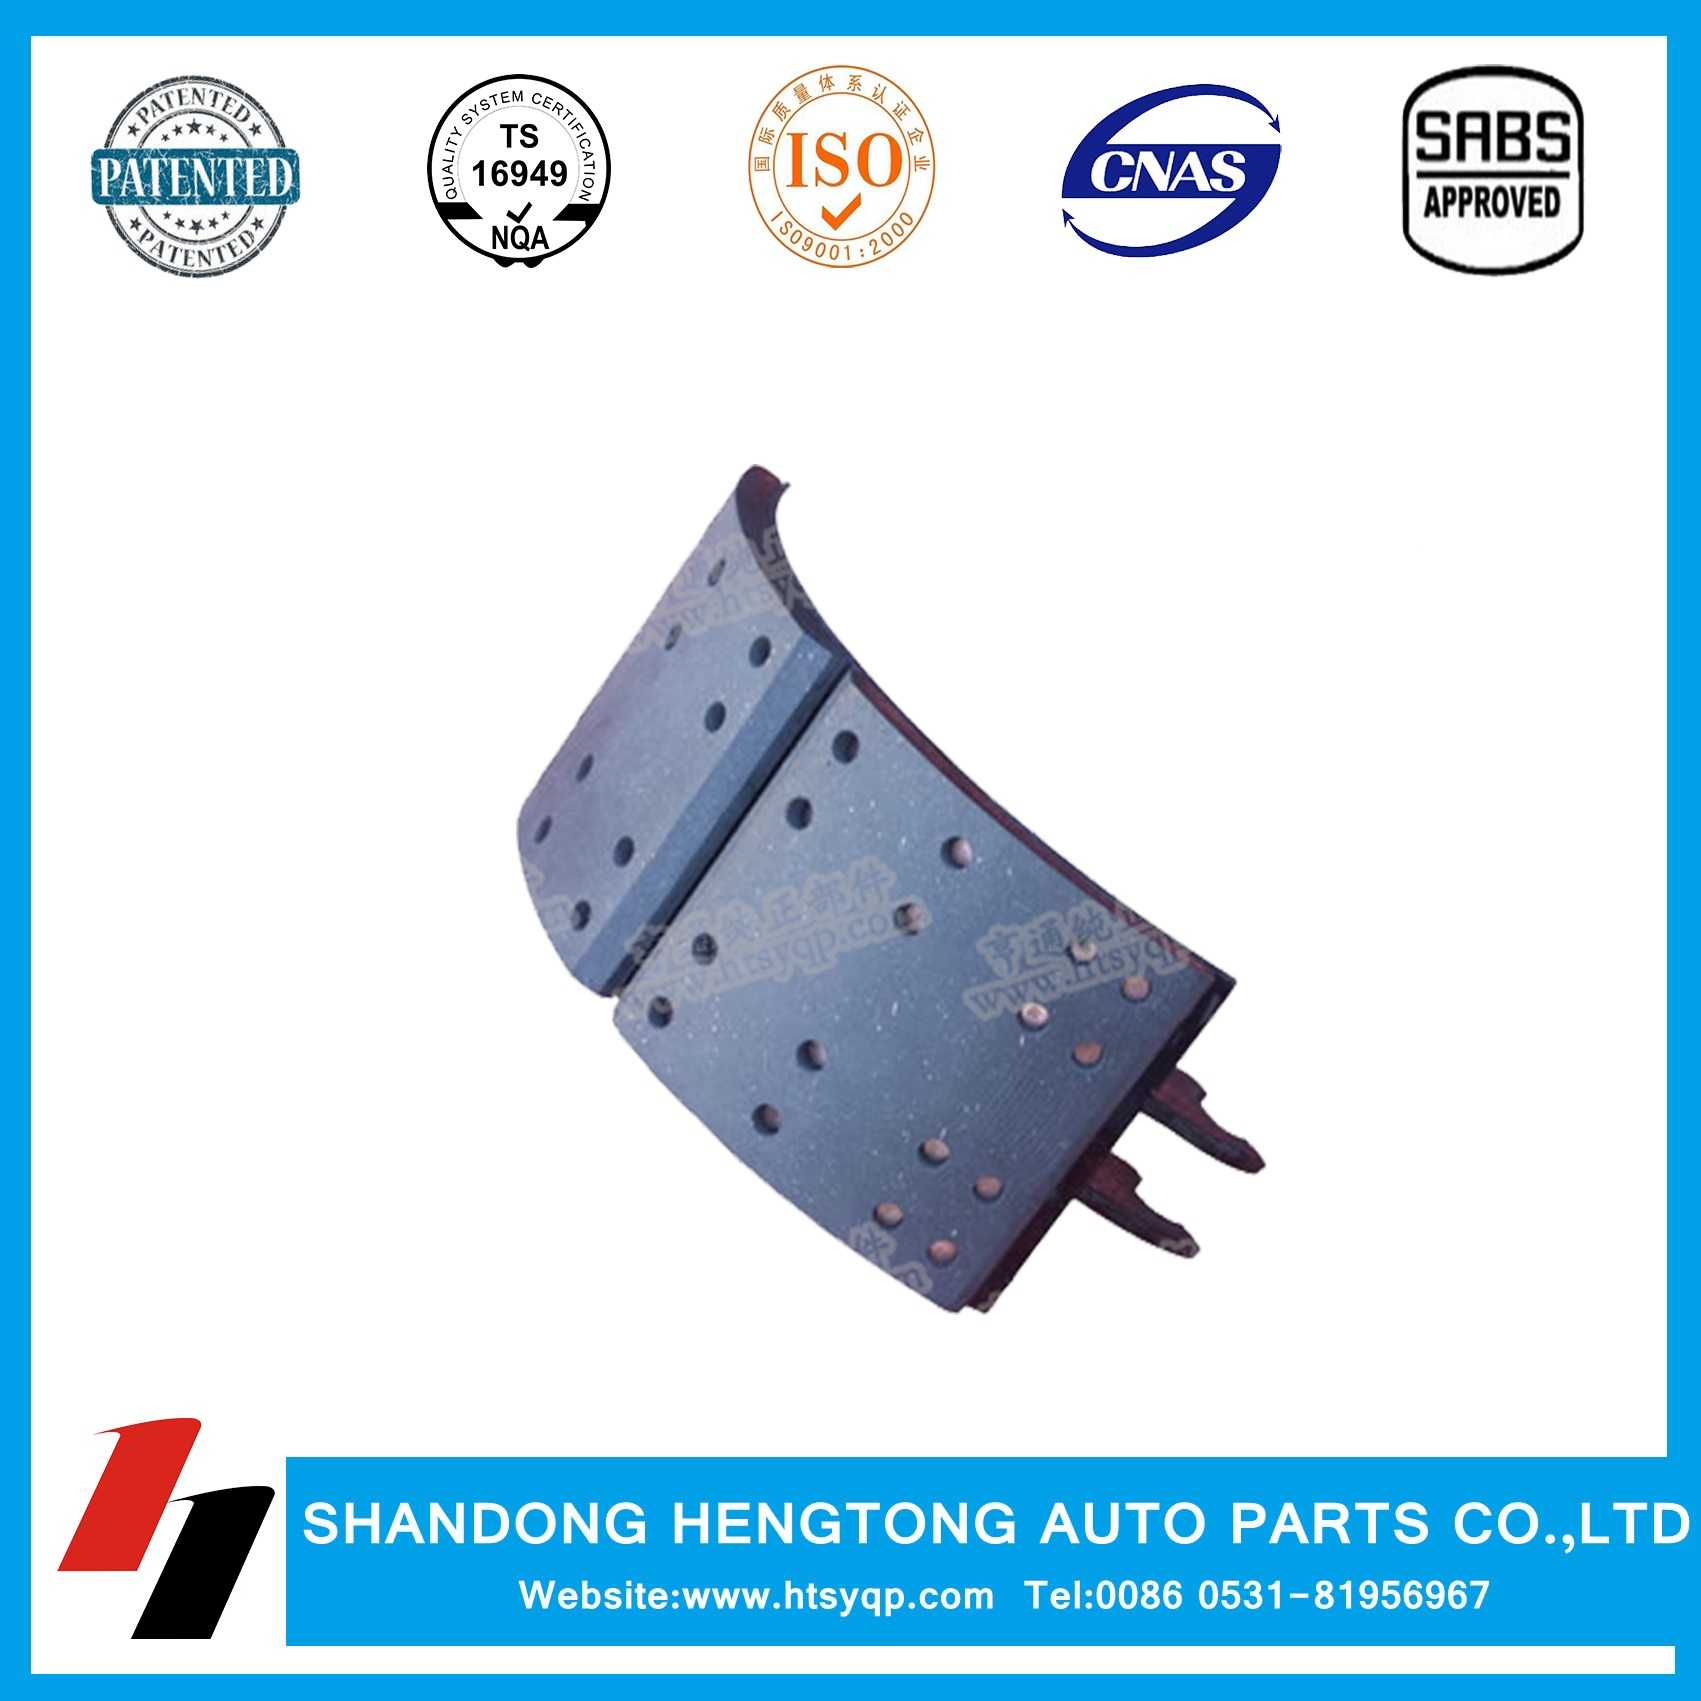 Brake shoe assemblies for heavy duty truck brake system